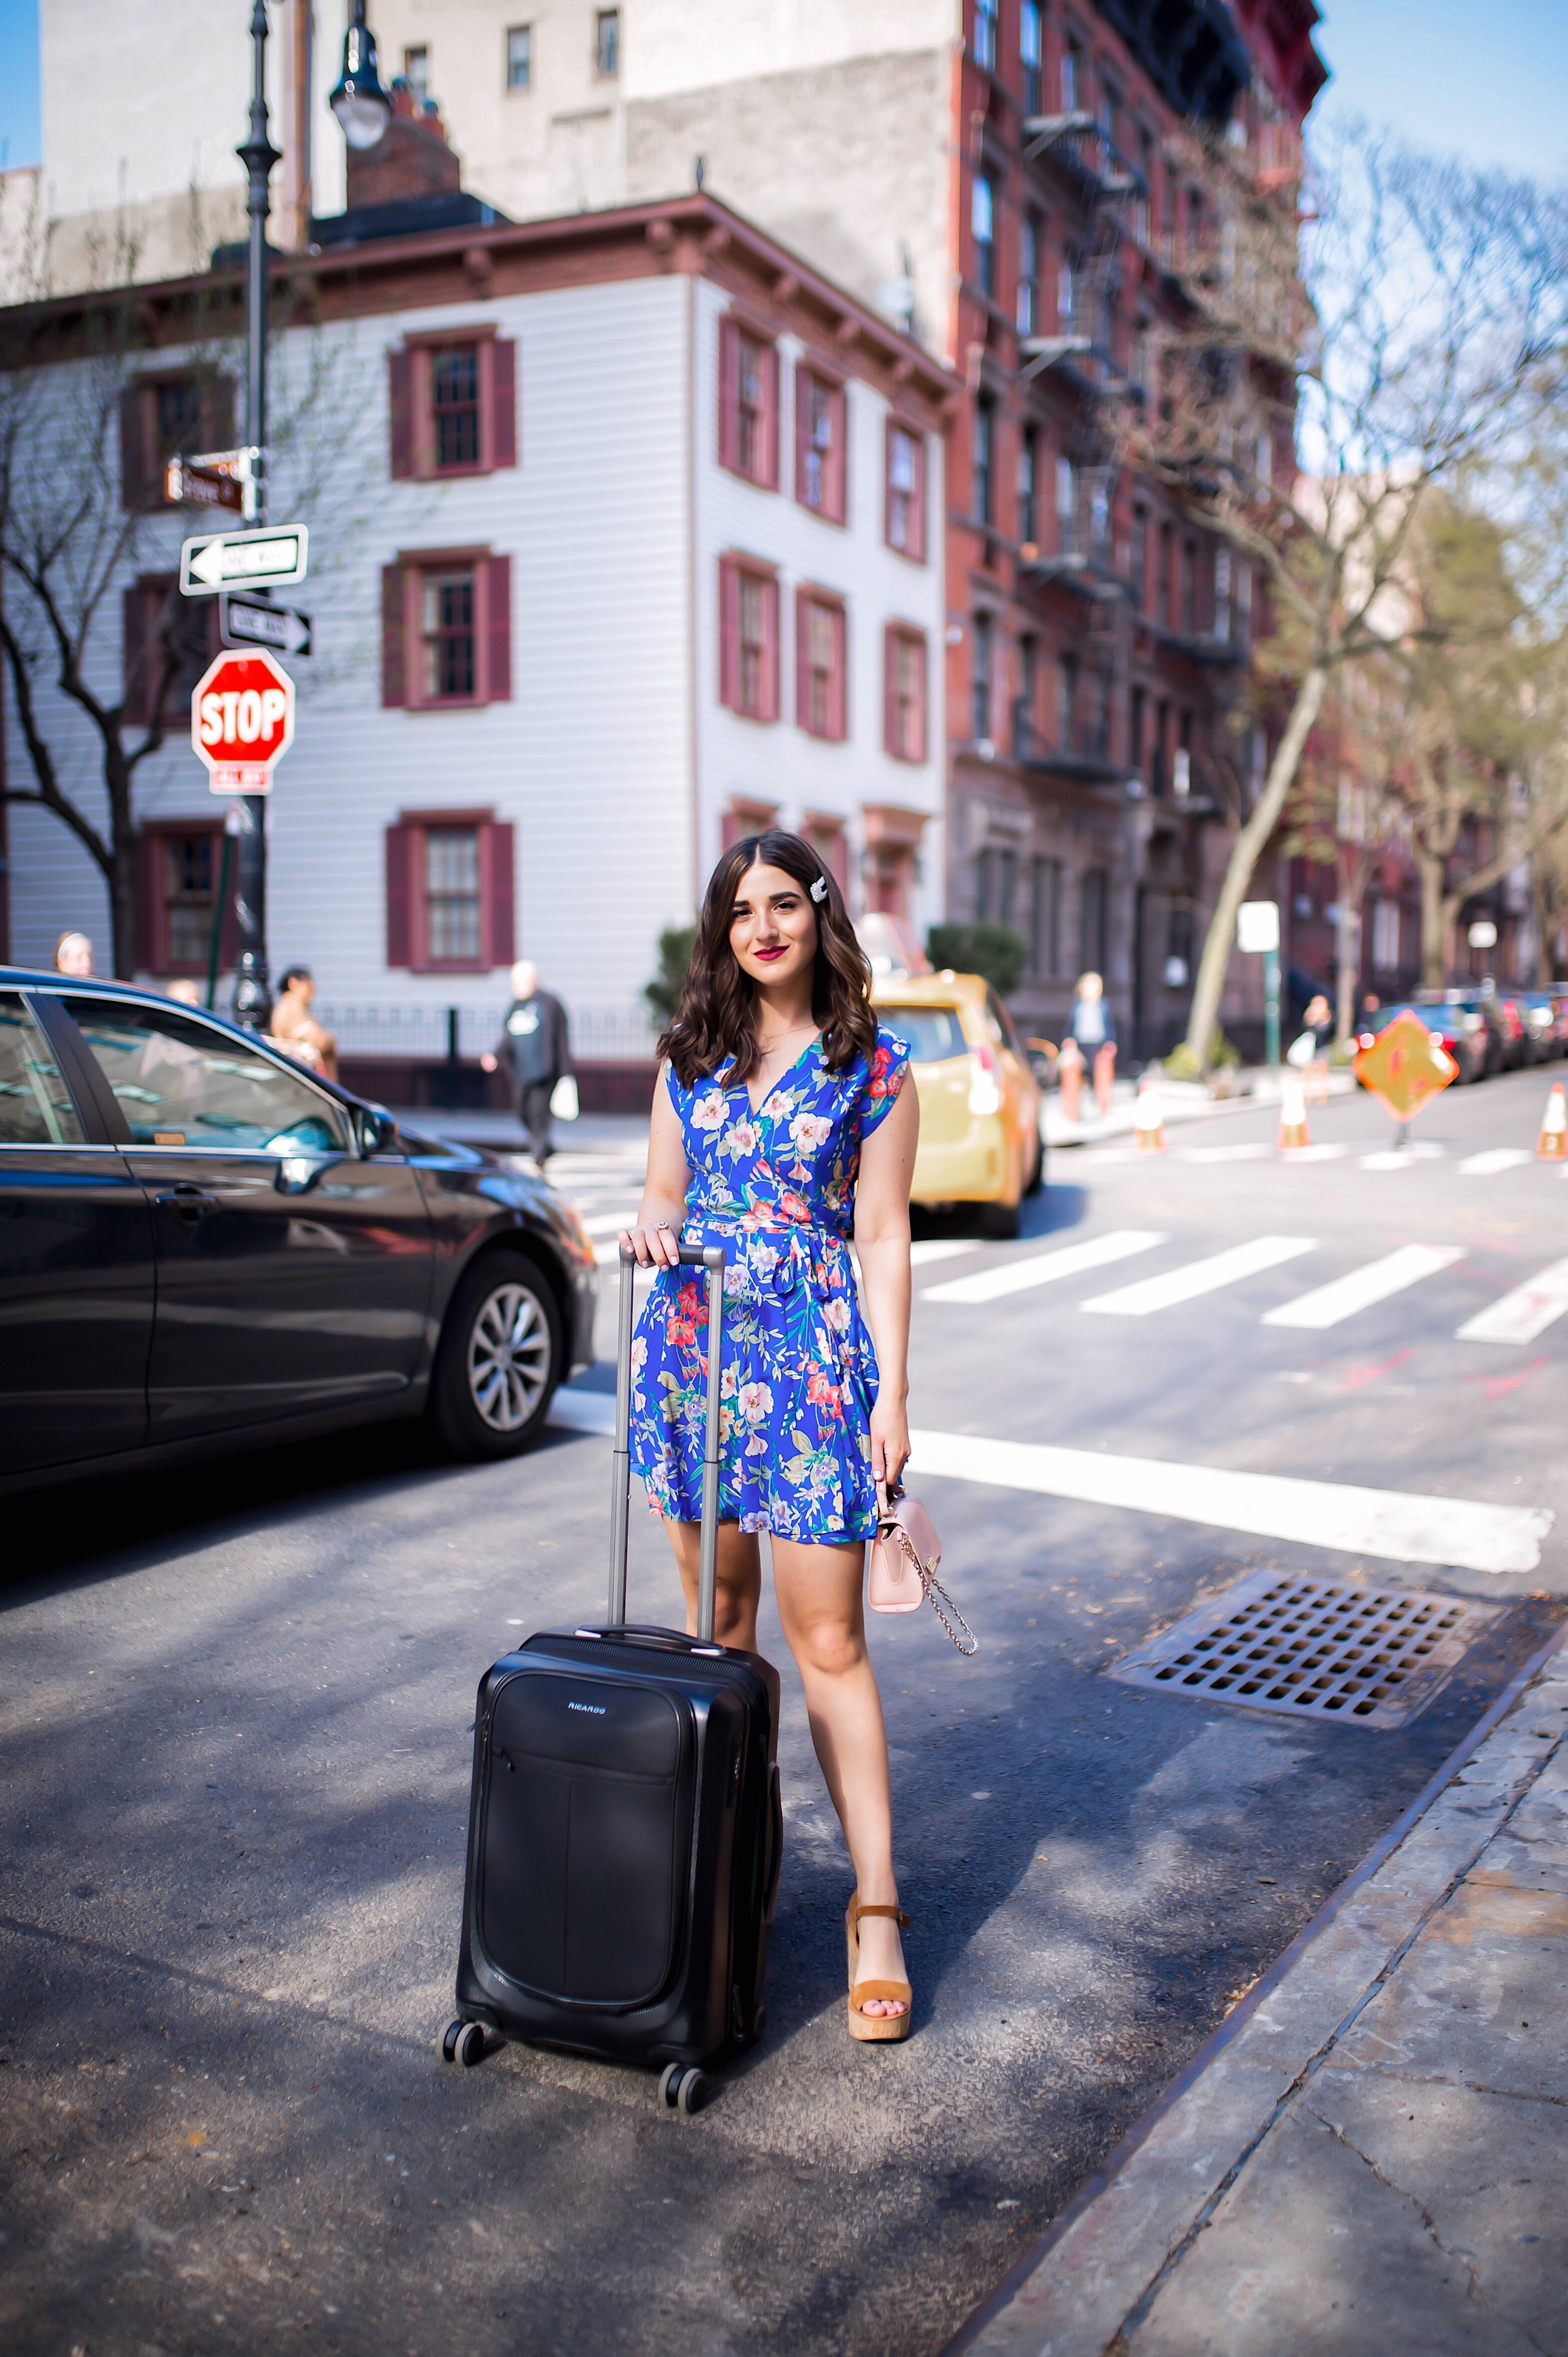 How Ricardo Luggage Keeps Me Organized The Cupertino Collection Esther Santer Fashion Blog NYC Street Style Blogger Outfit OOTD Trendy Shopping Girl Travel Honeymoon Trip Vacation Europe Pack Packing Best Black Front Pocket Hard Case Carry On Suitcase.JPG